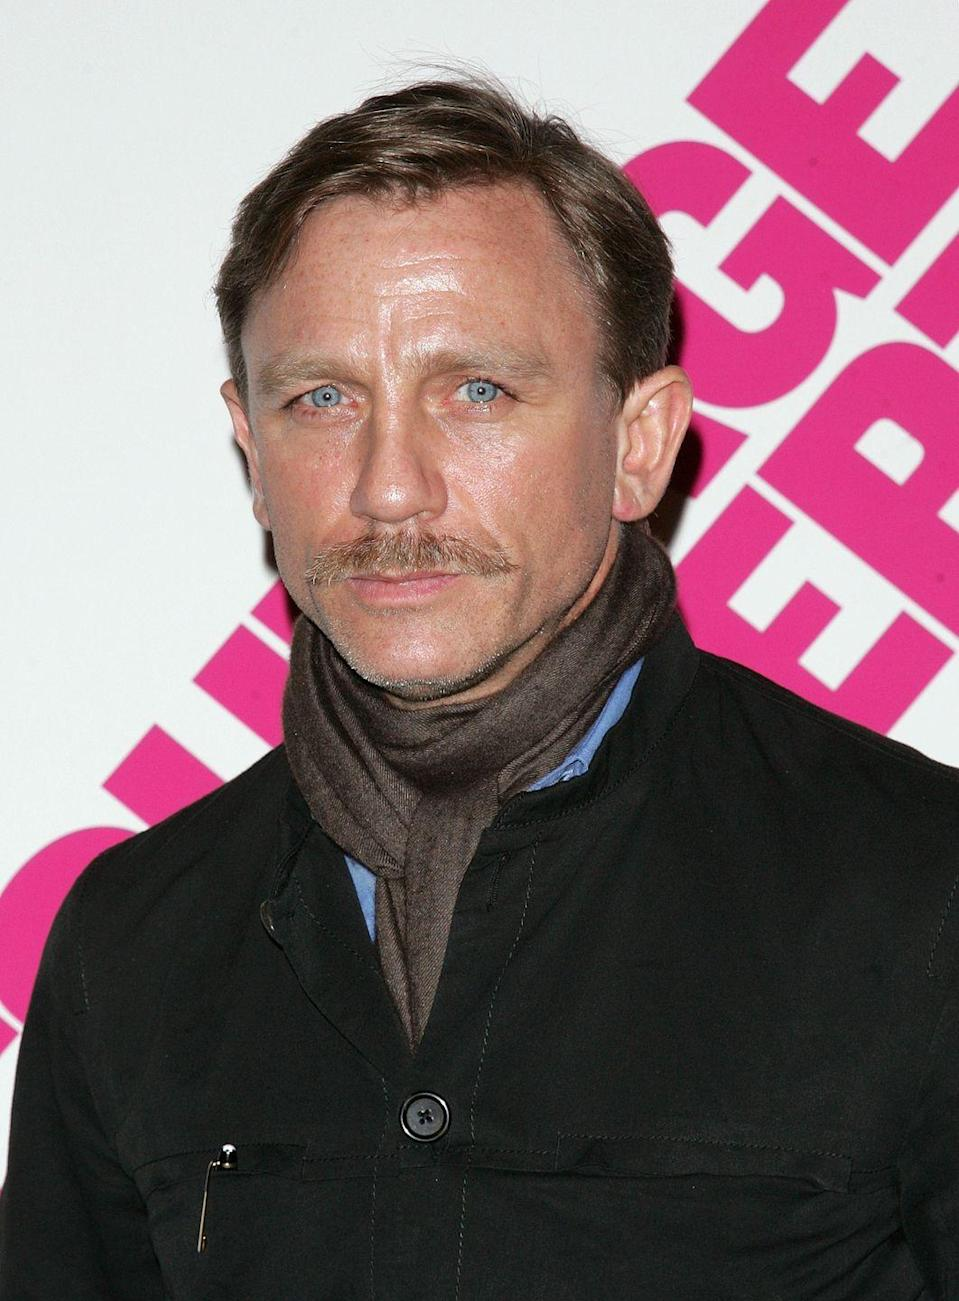 <p>With a mustache, Craig resembles one of Bond's many villains. </p>